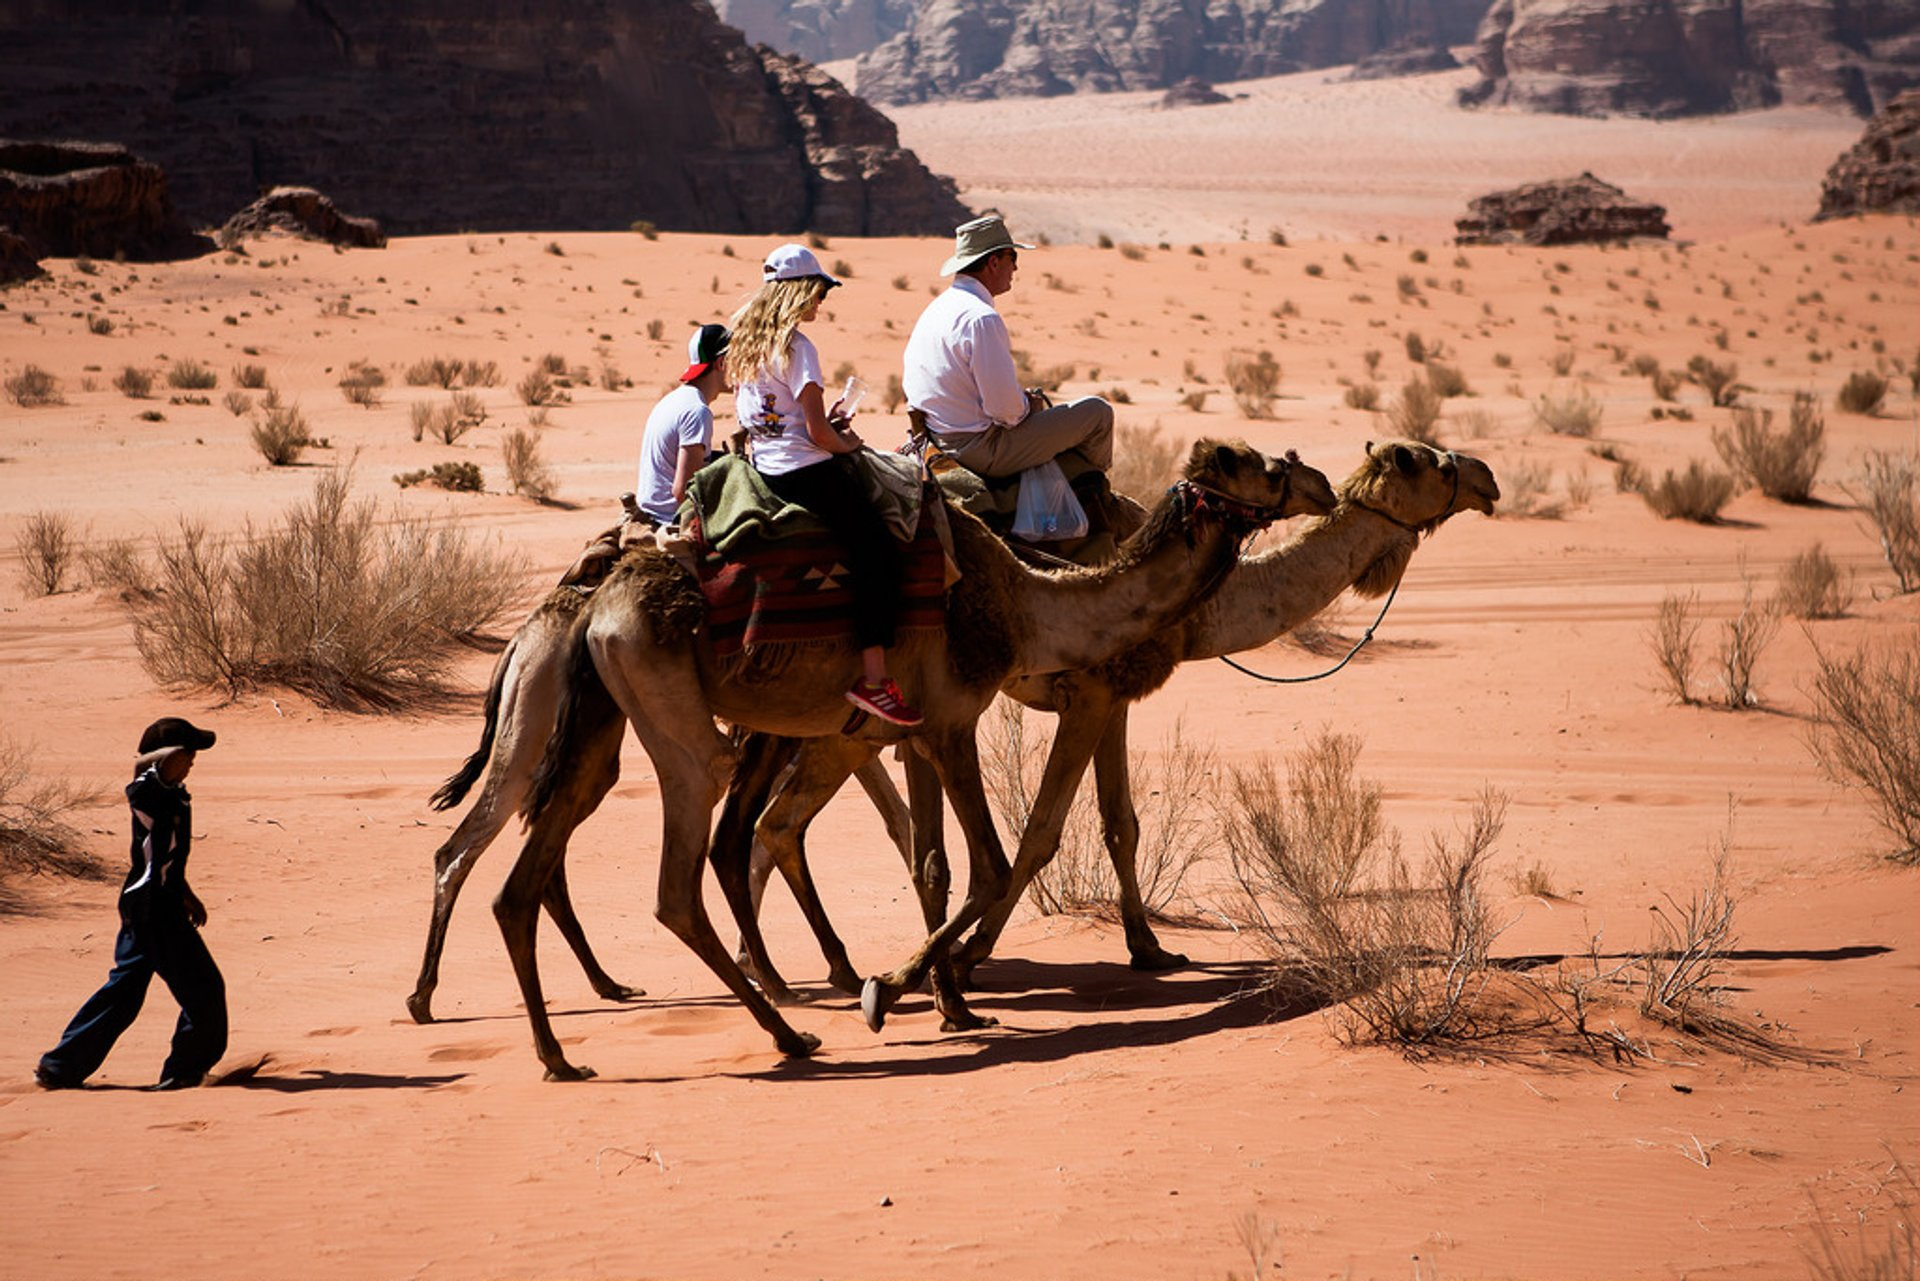 Camel Safari in Jordan - Best Season 2020